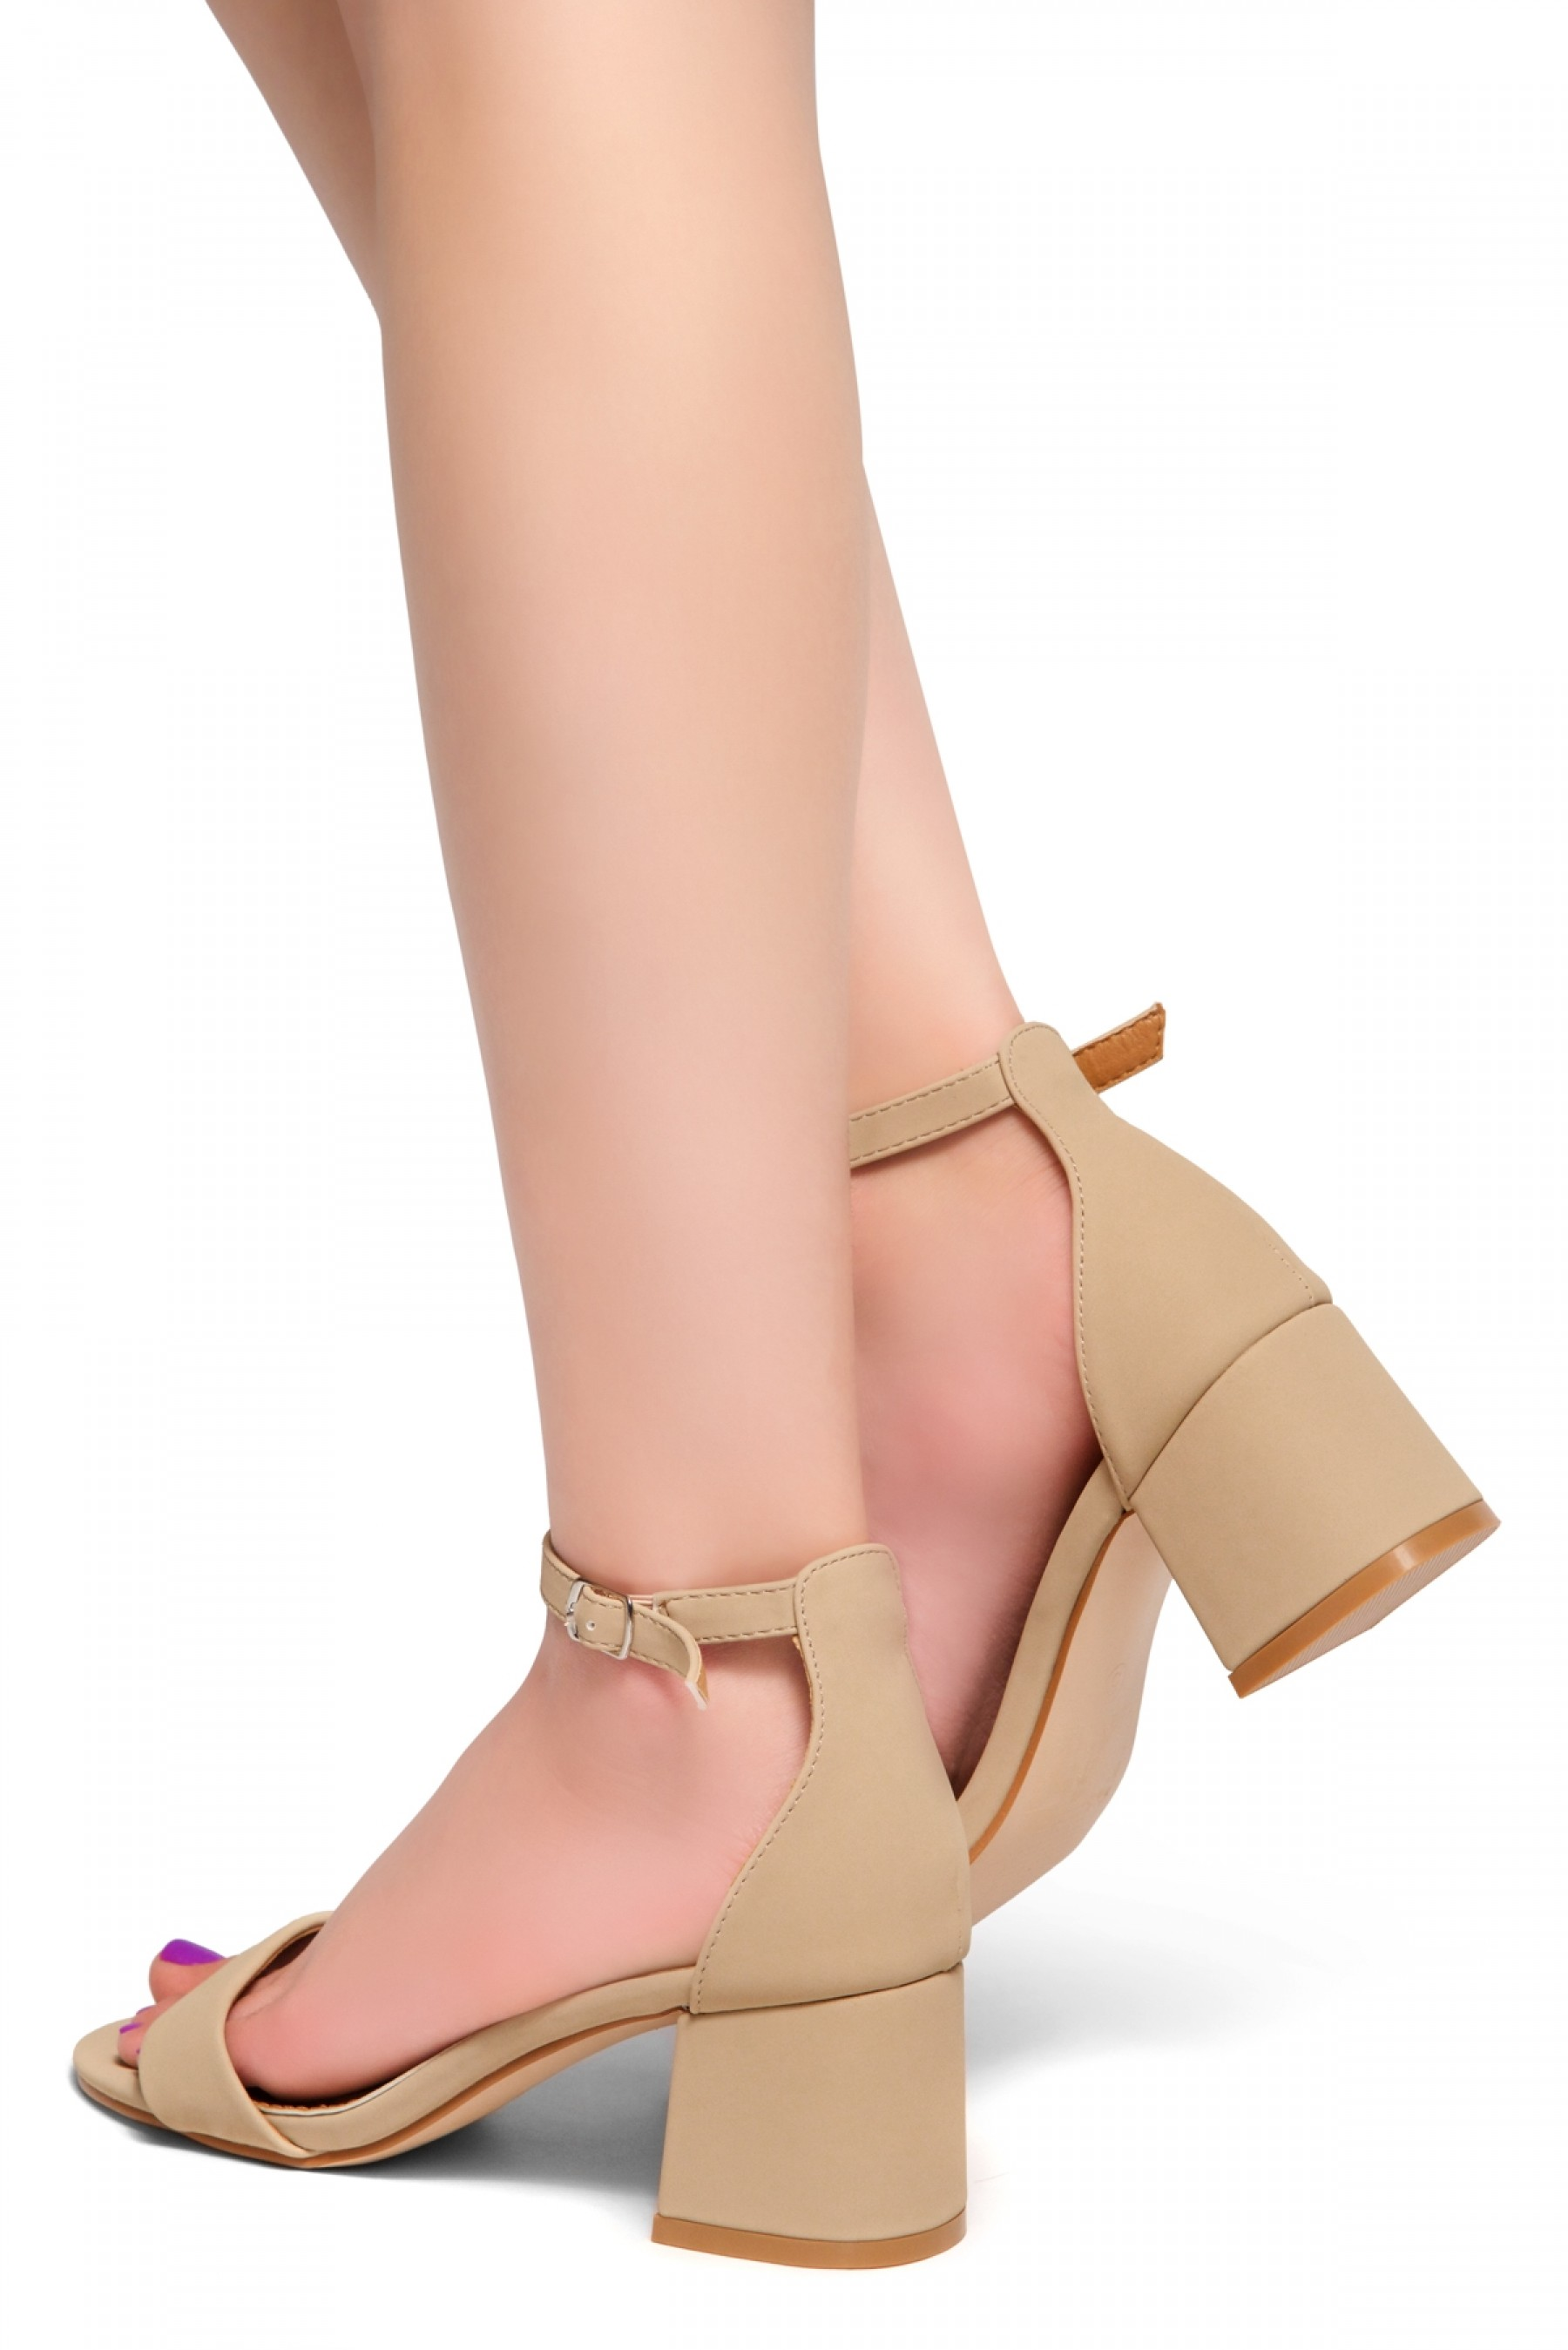 HerStyle SUNDAY-open toe, block heel,ankle strap with an adjustable buckle (SandNubuck)